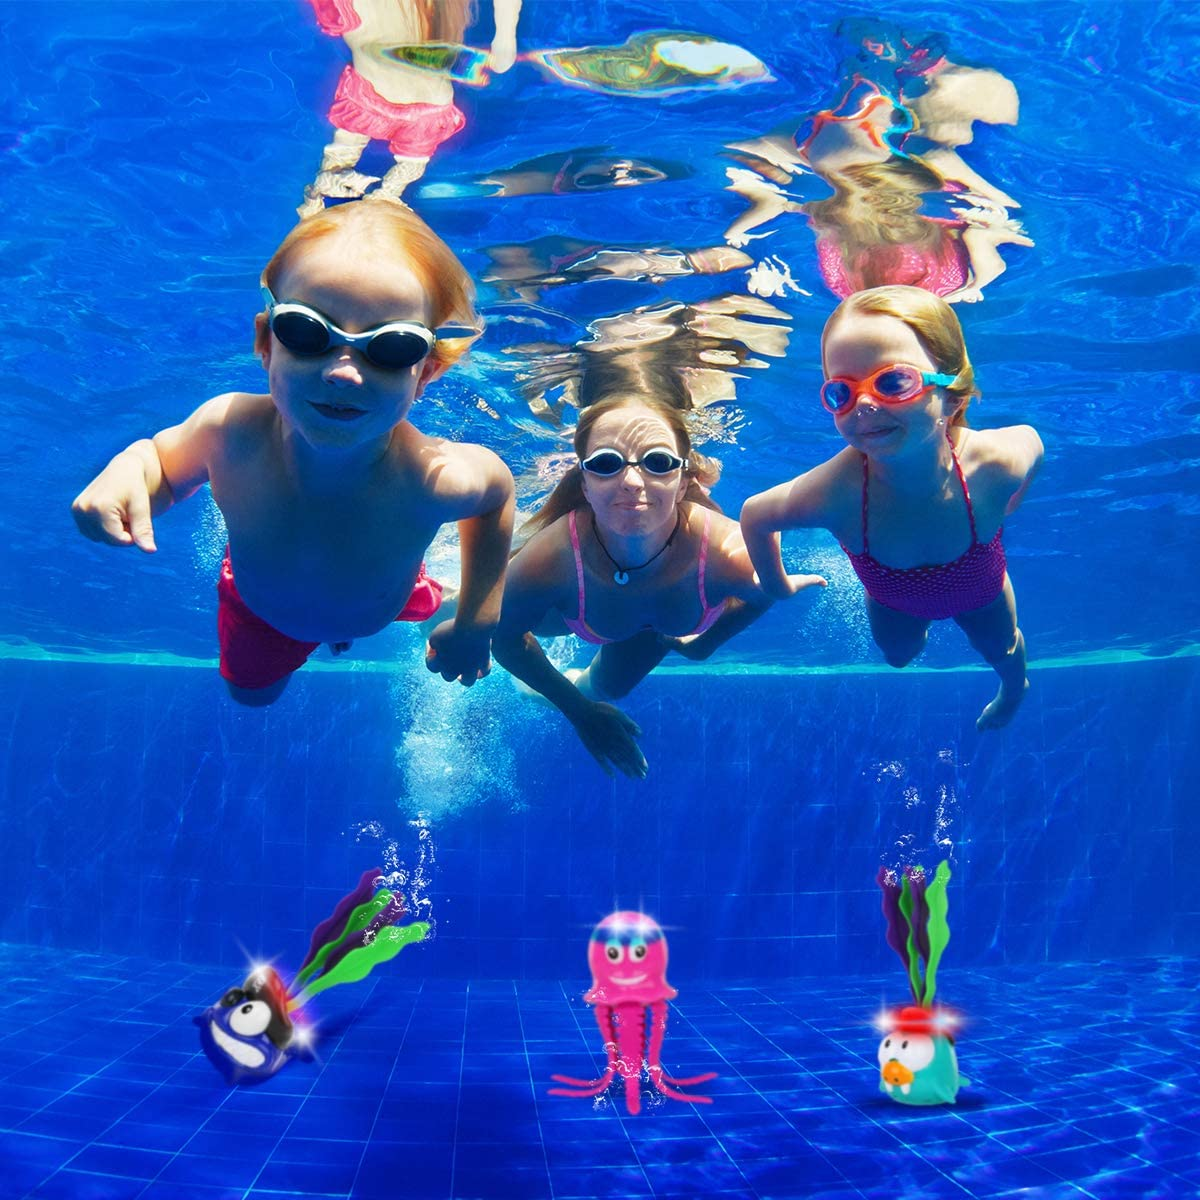 Swimming Pool Toys Light UP Diving Toys Sinking Dive Sticks for Pool Games Summer Outdoor Water Toys for Kids Boys Girls Kindergarten Preschoolers Aged 3 4 5 6 7 8 9 10 Including 3 Cute Marine Animals